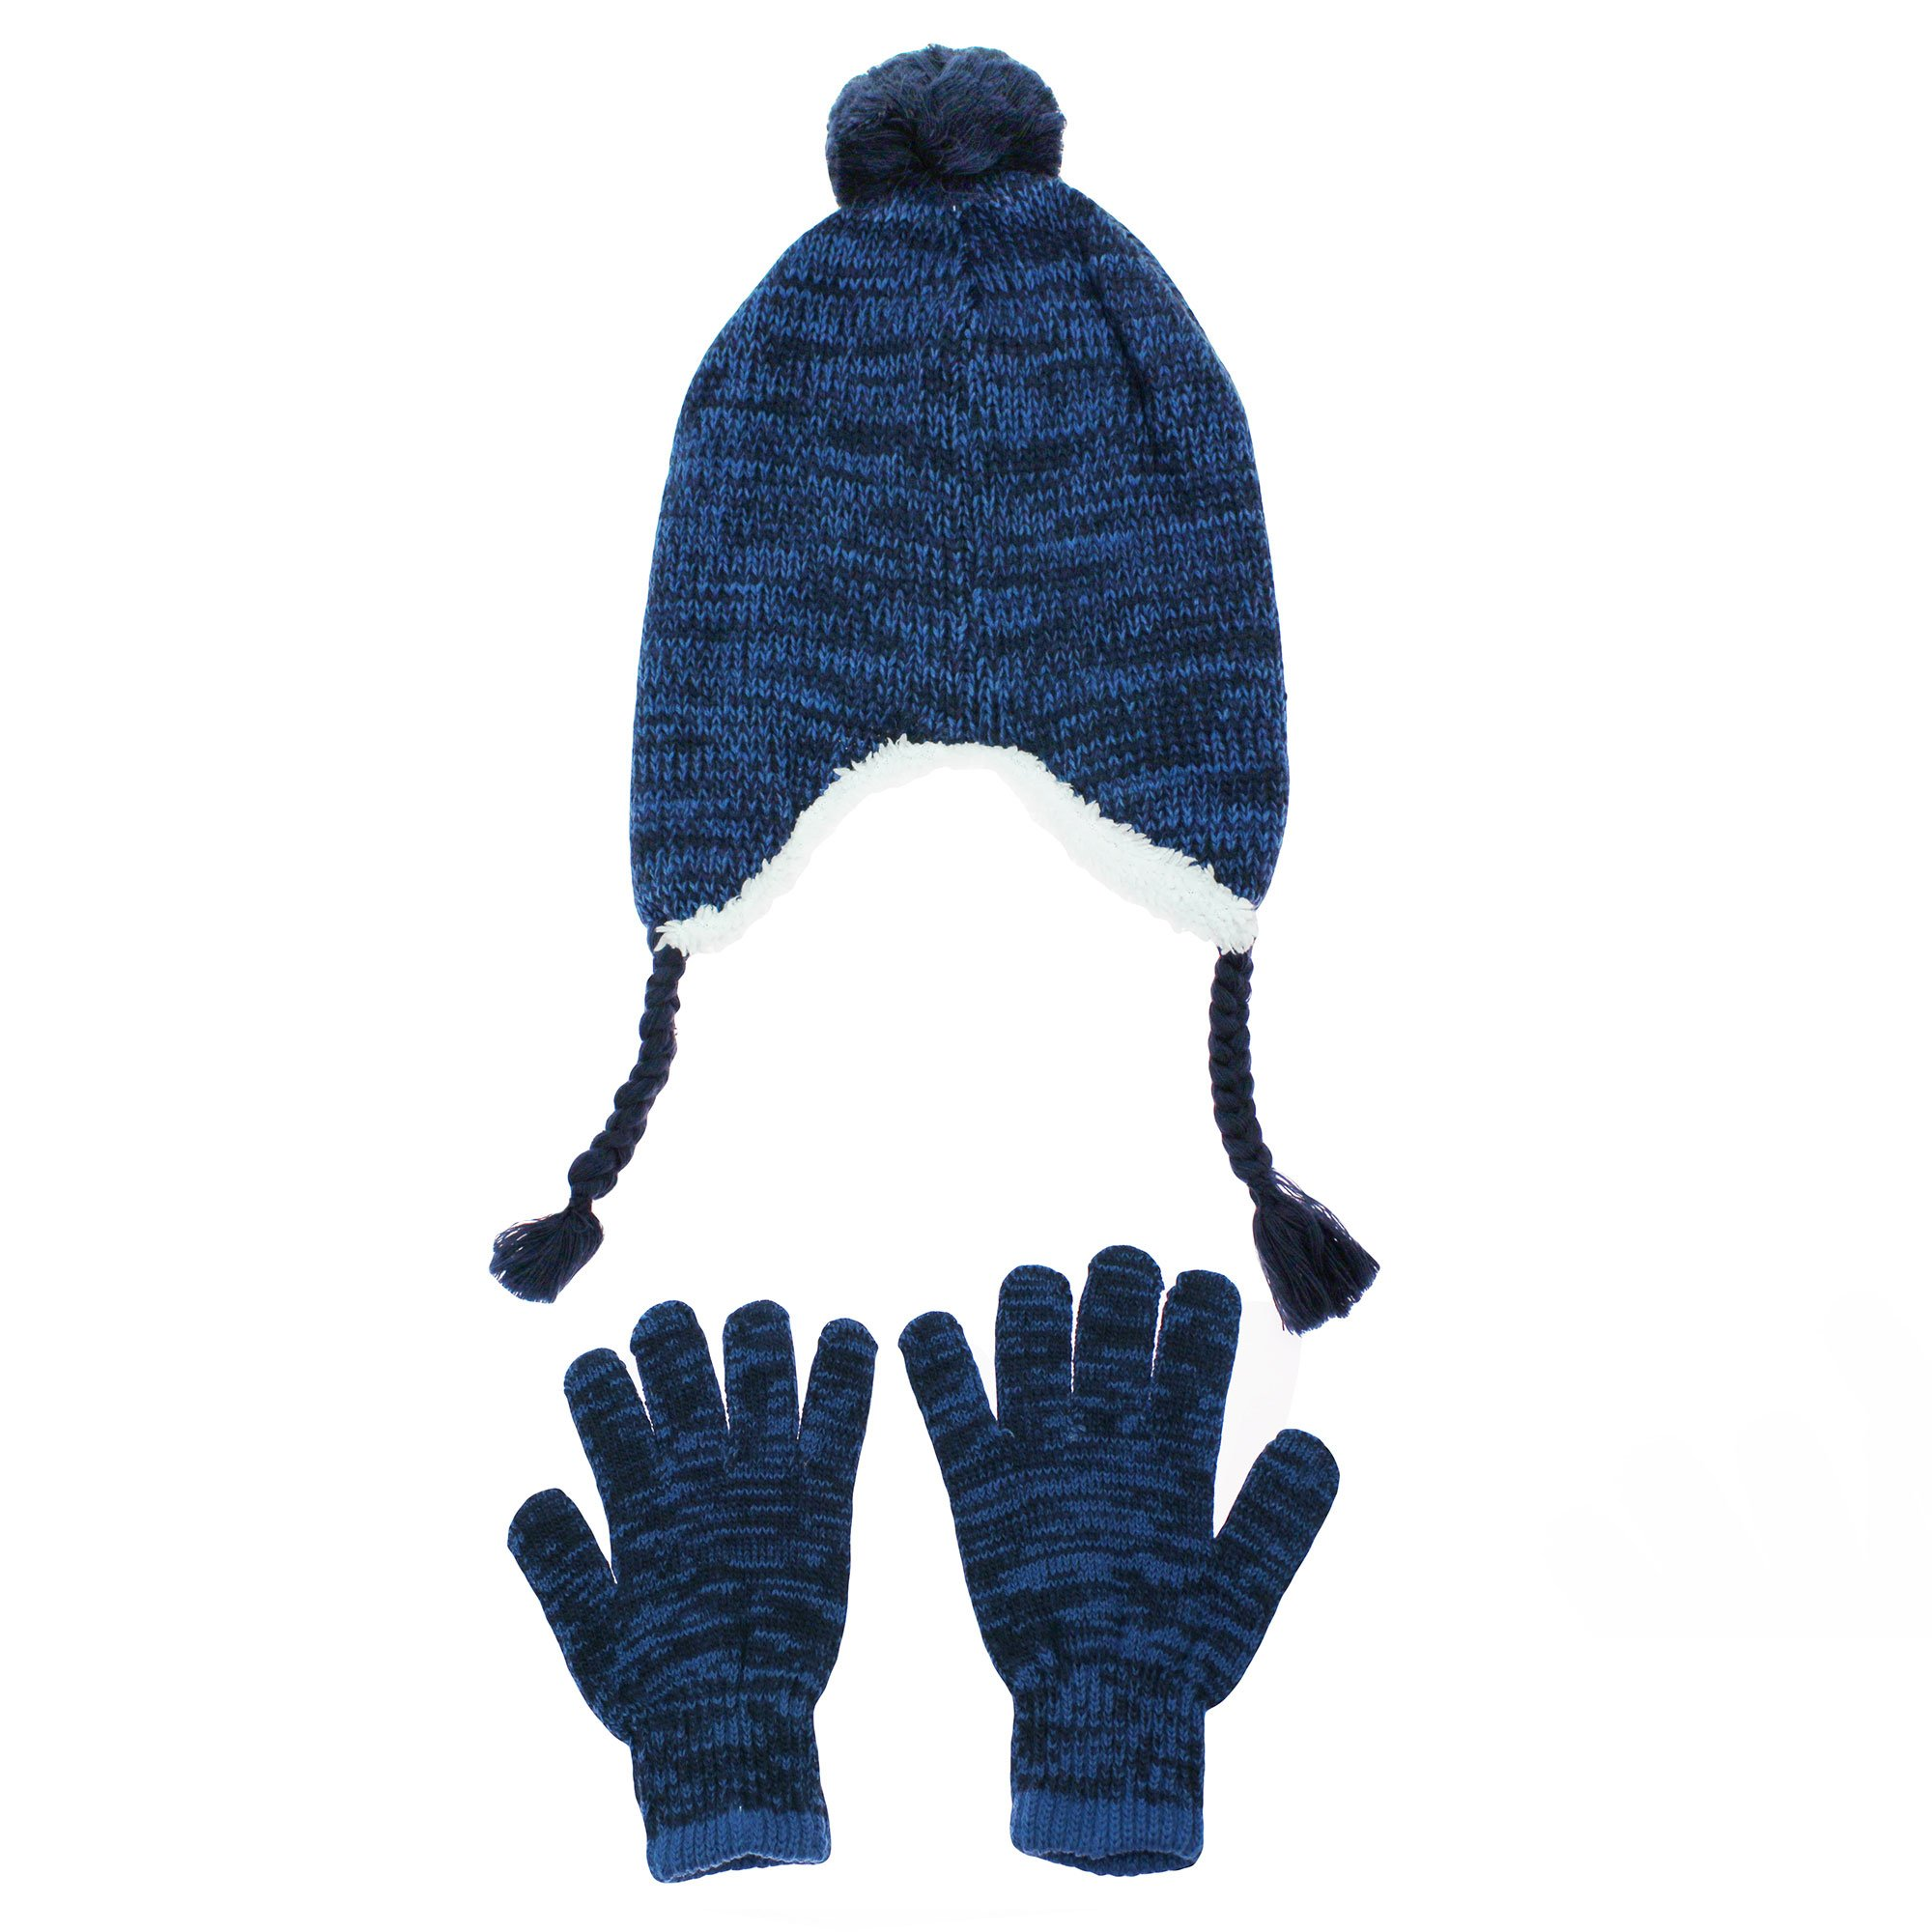 38fa287768dd2 Get Quotations · Nolan Navy Blue Peruvian Boys Winter Hat with Ear Flaps  and Glove Set Youth 4-